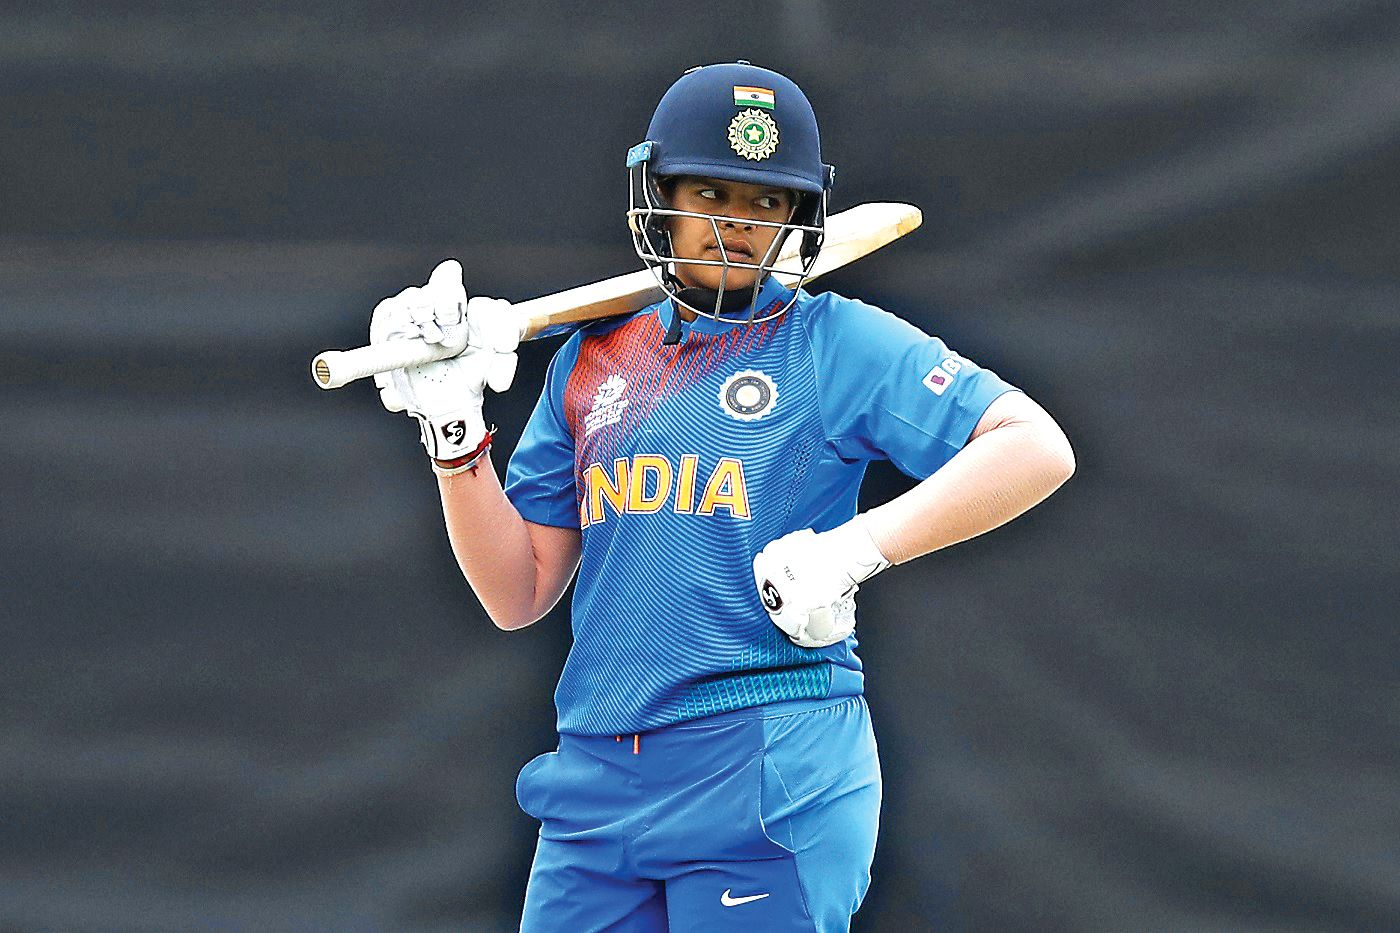 Shefali Verma is the new star of Indian women's cricket